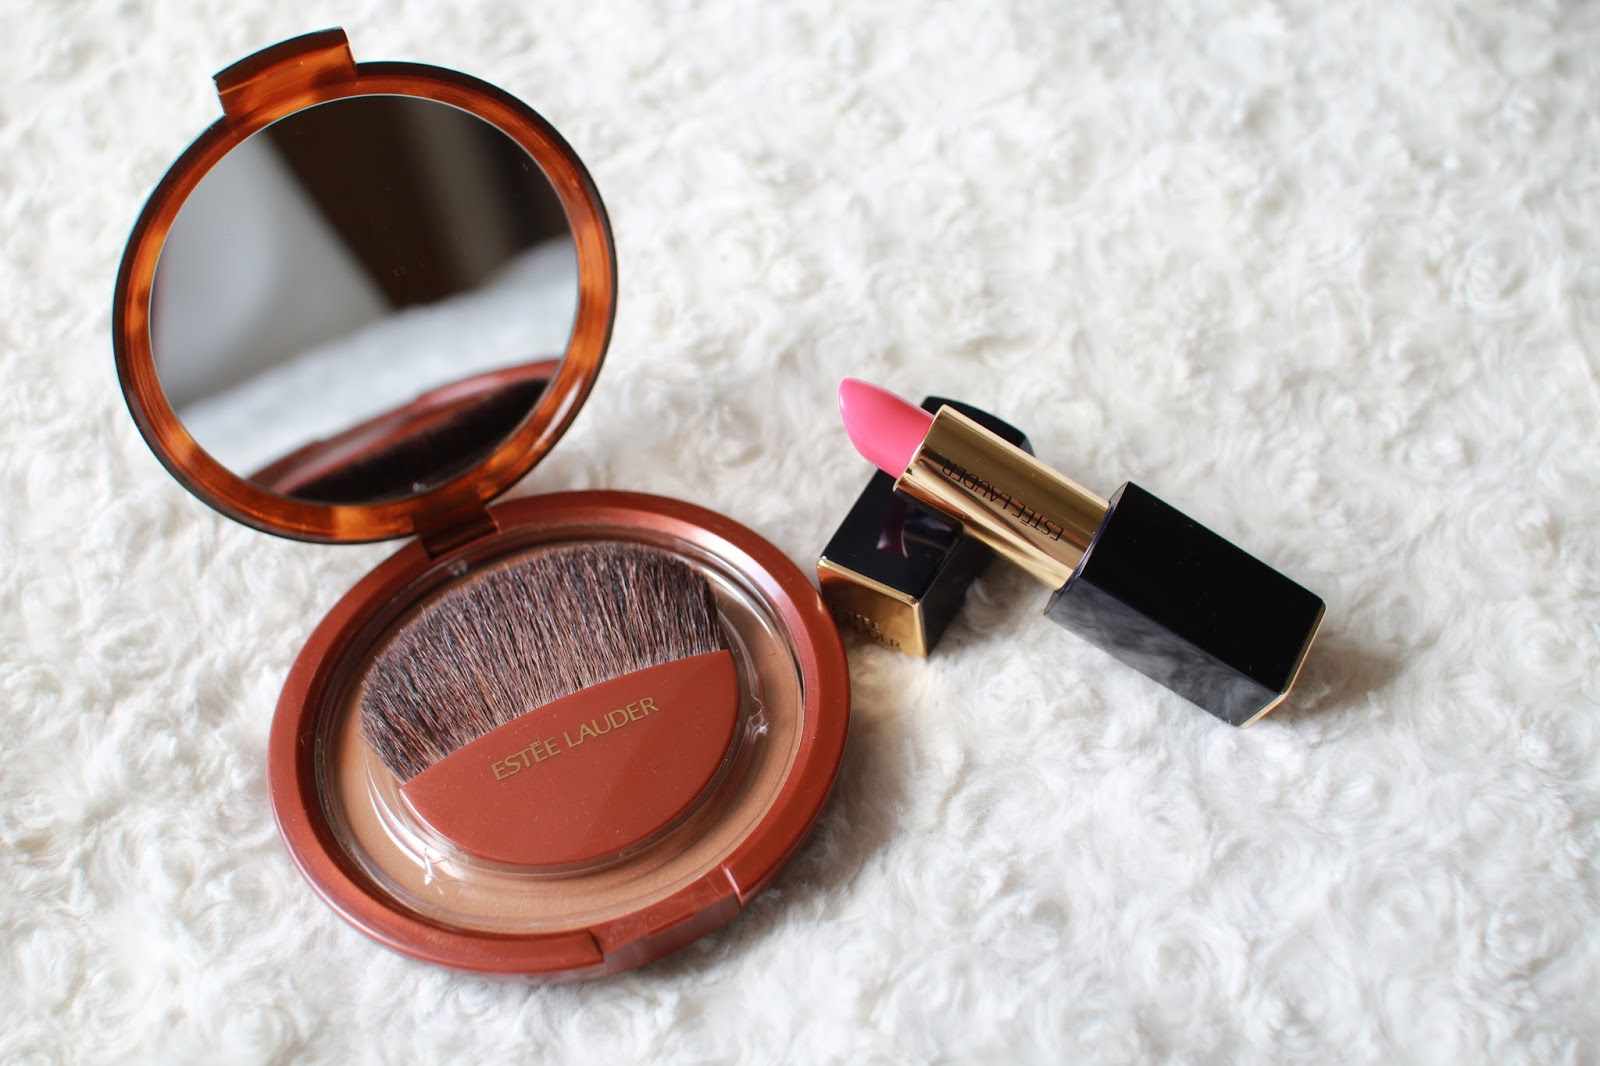 Estee lauder bronze goddess powder and pure color envy in ambitious pink